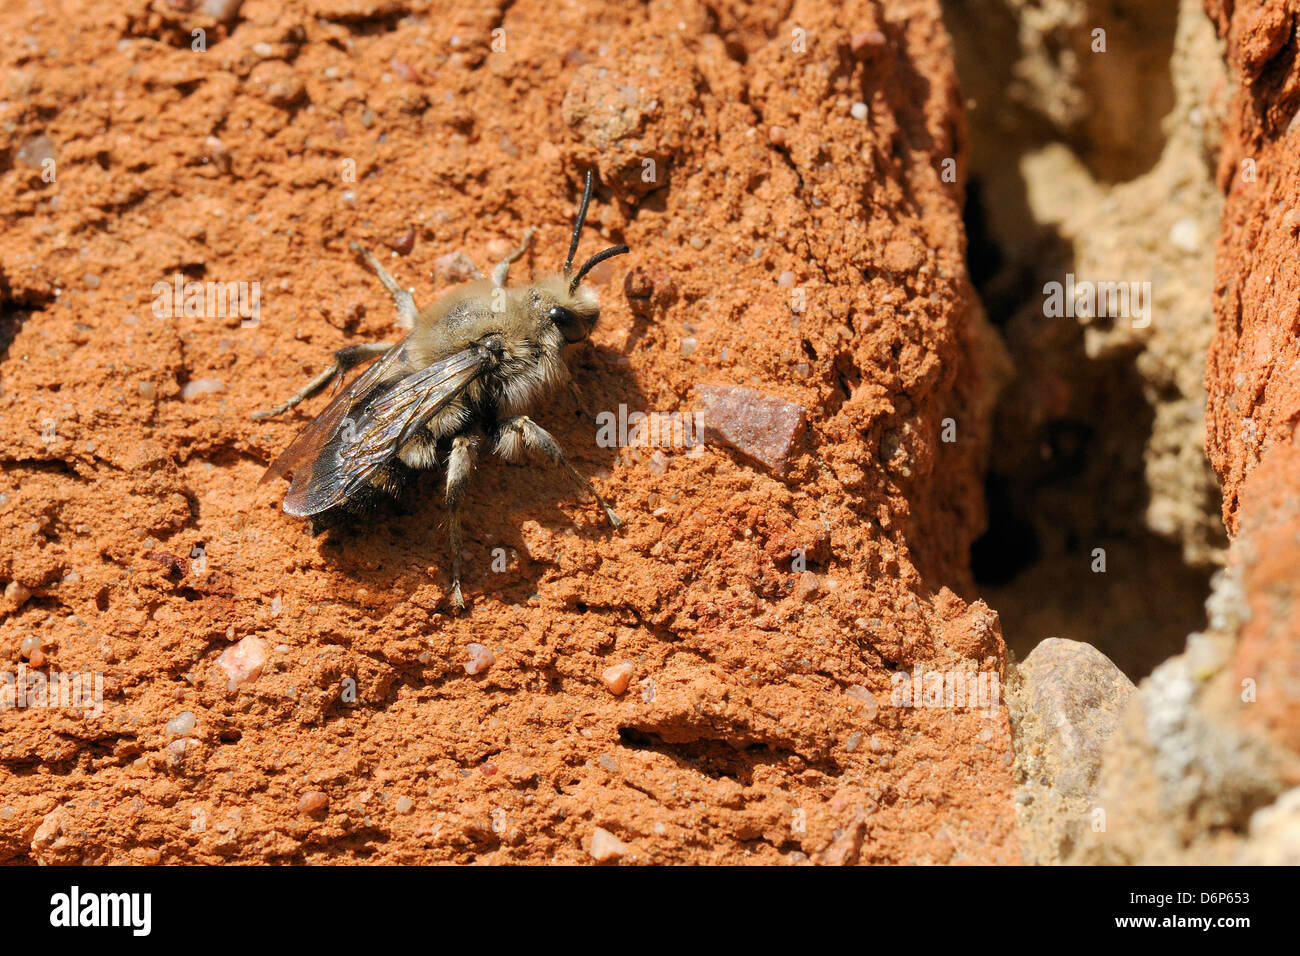 Cuckoo bee (Melecta albifrons) a parasite of solitary bees, searching an old wall for host nests, Brandenburg, Germany, - Stock Image